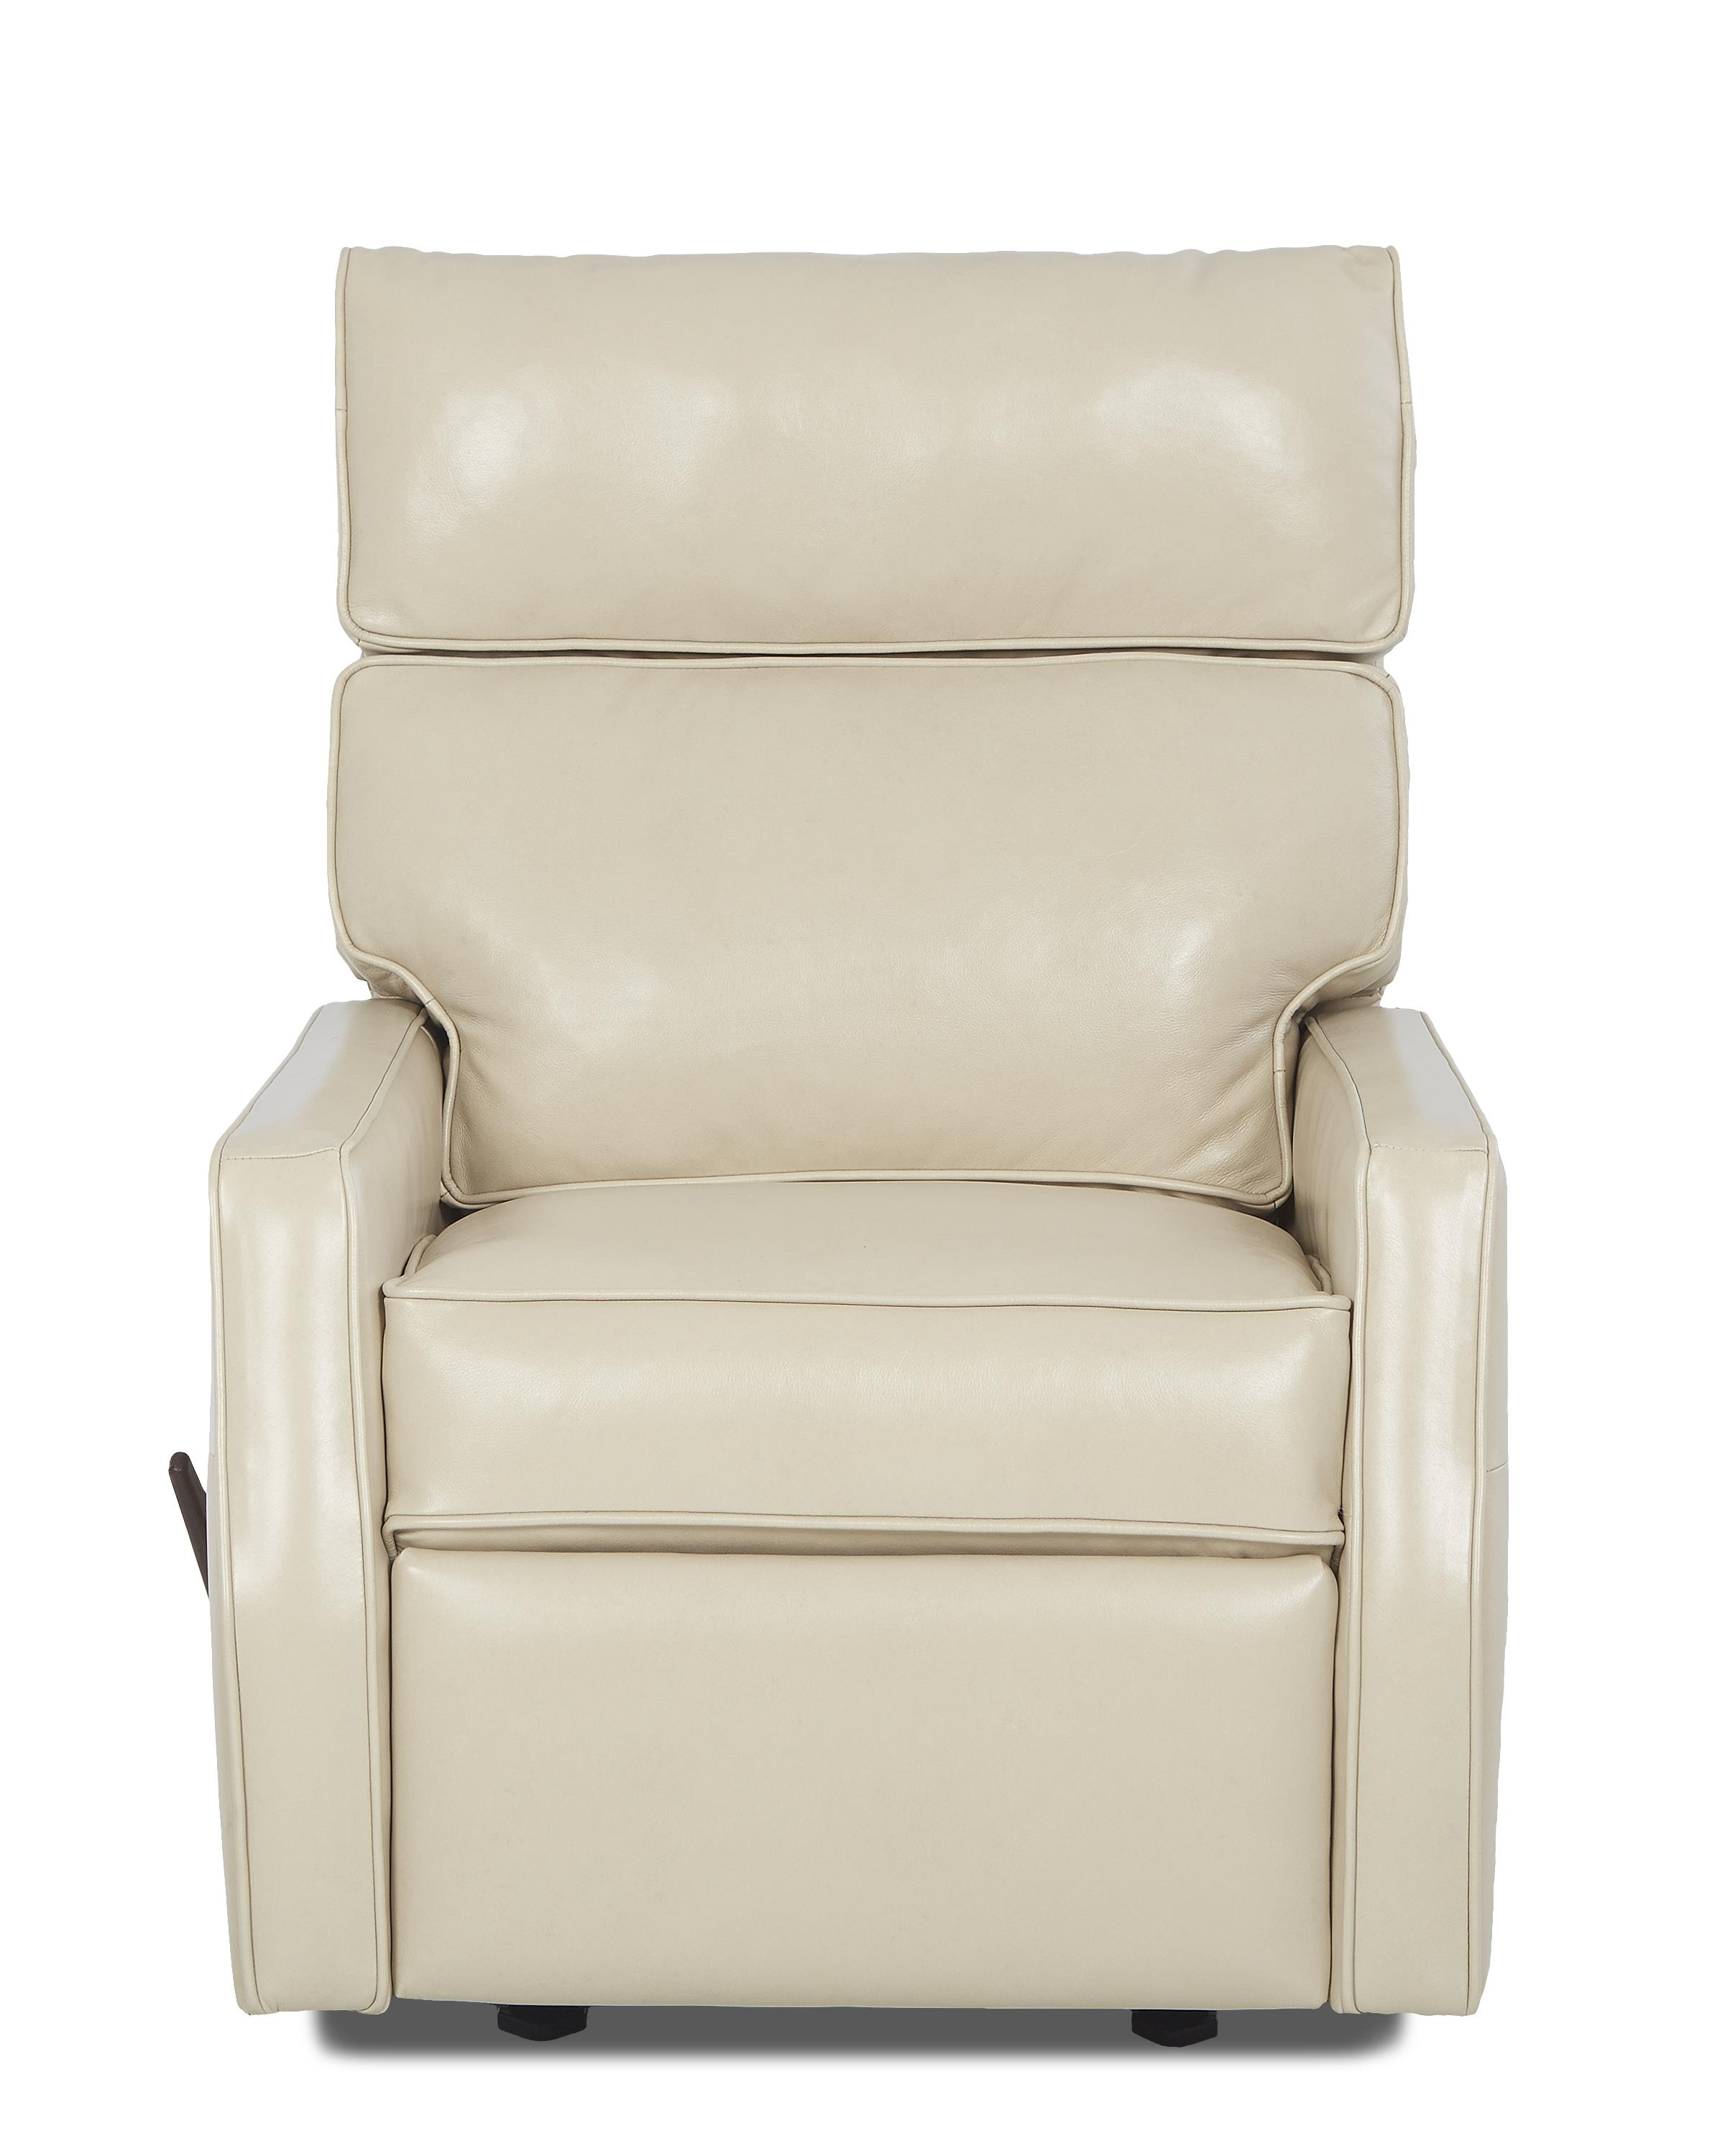 Klaussner Fairlane Contemporary Swivel Rocking Reclining Chair - Item Number: LV82803H SRRC-OutsiderAlabaster